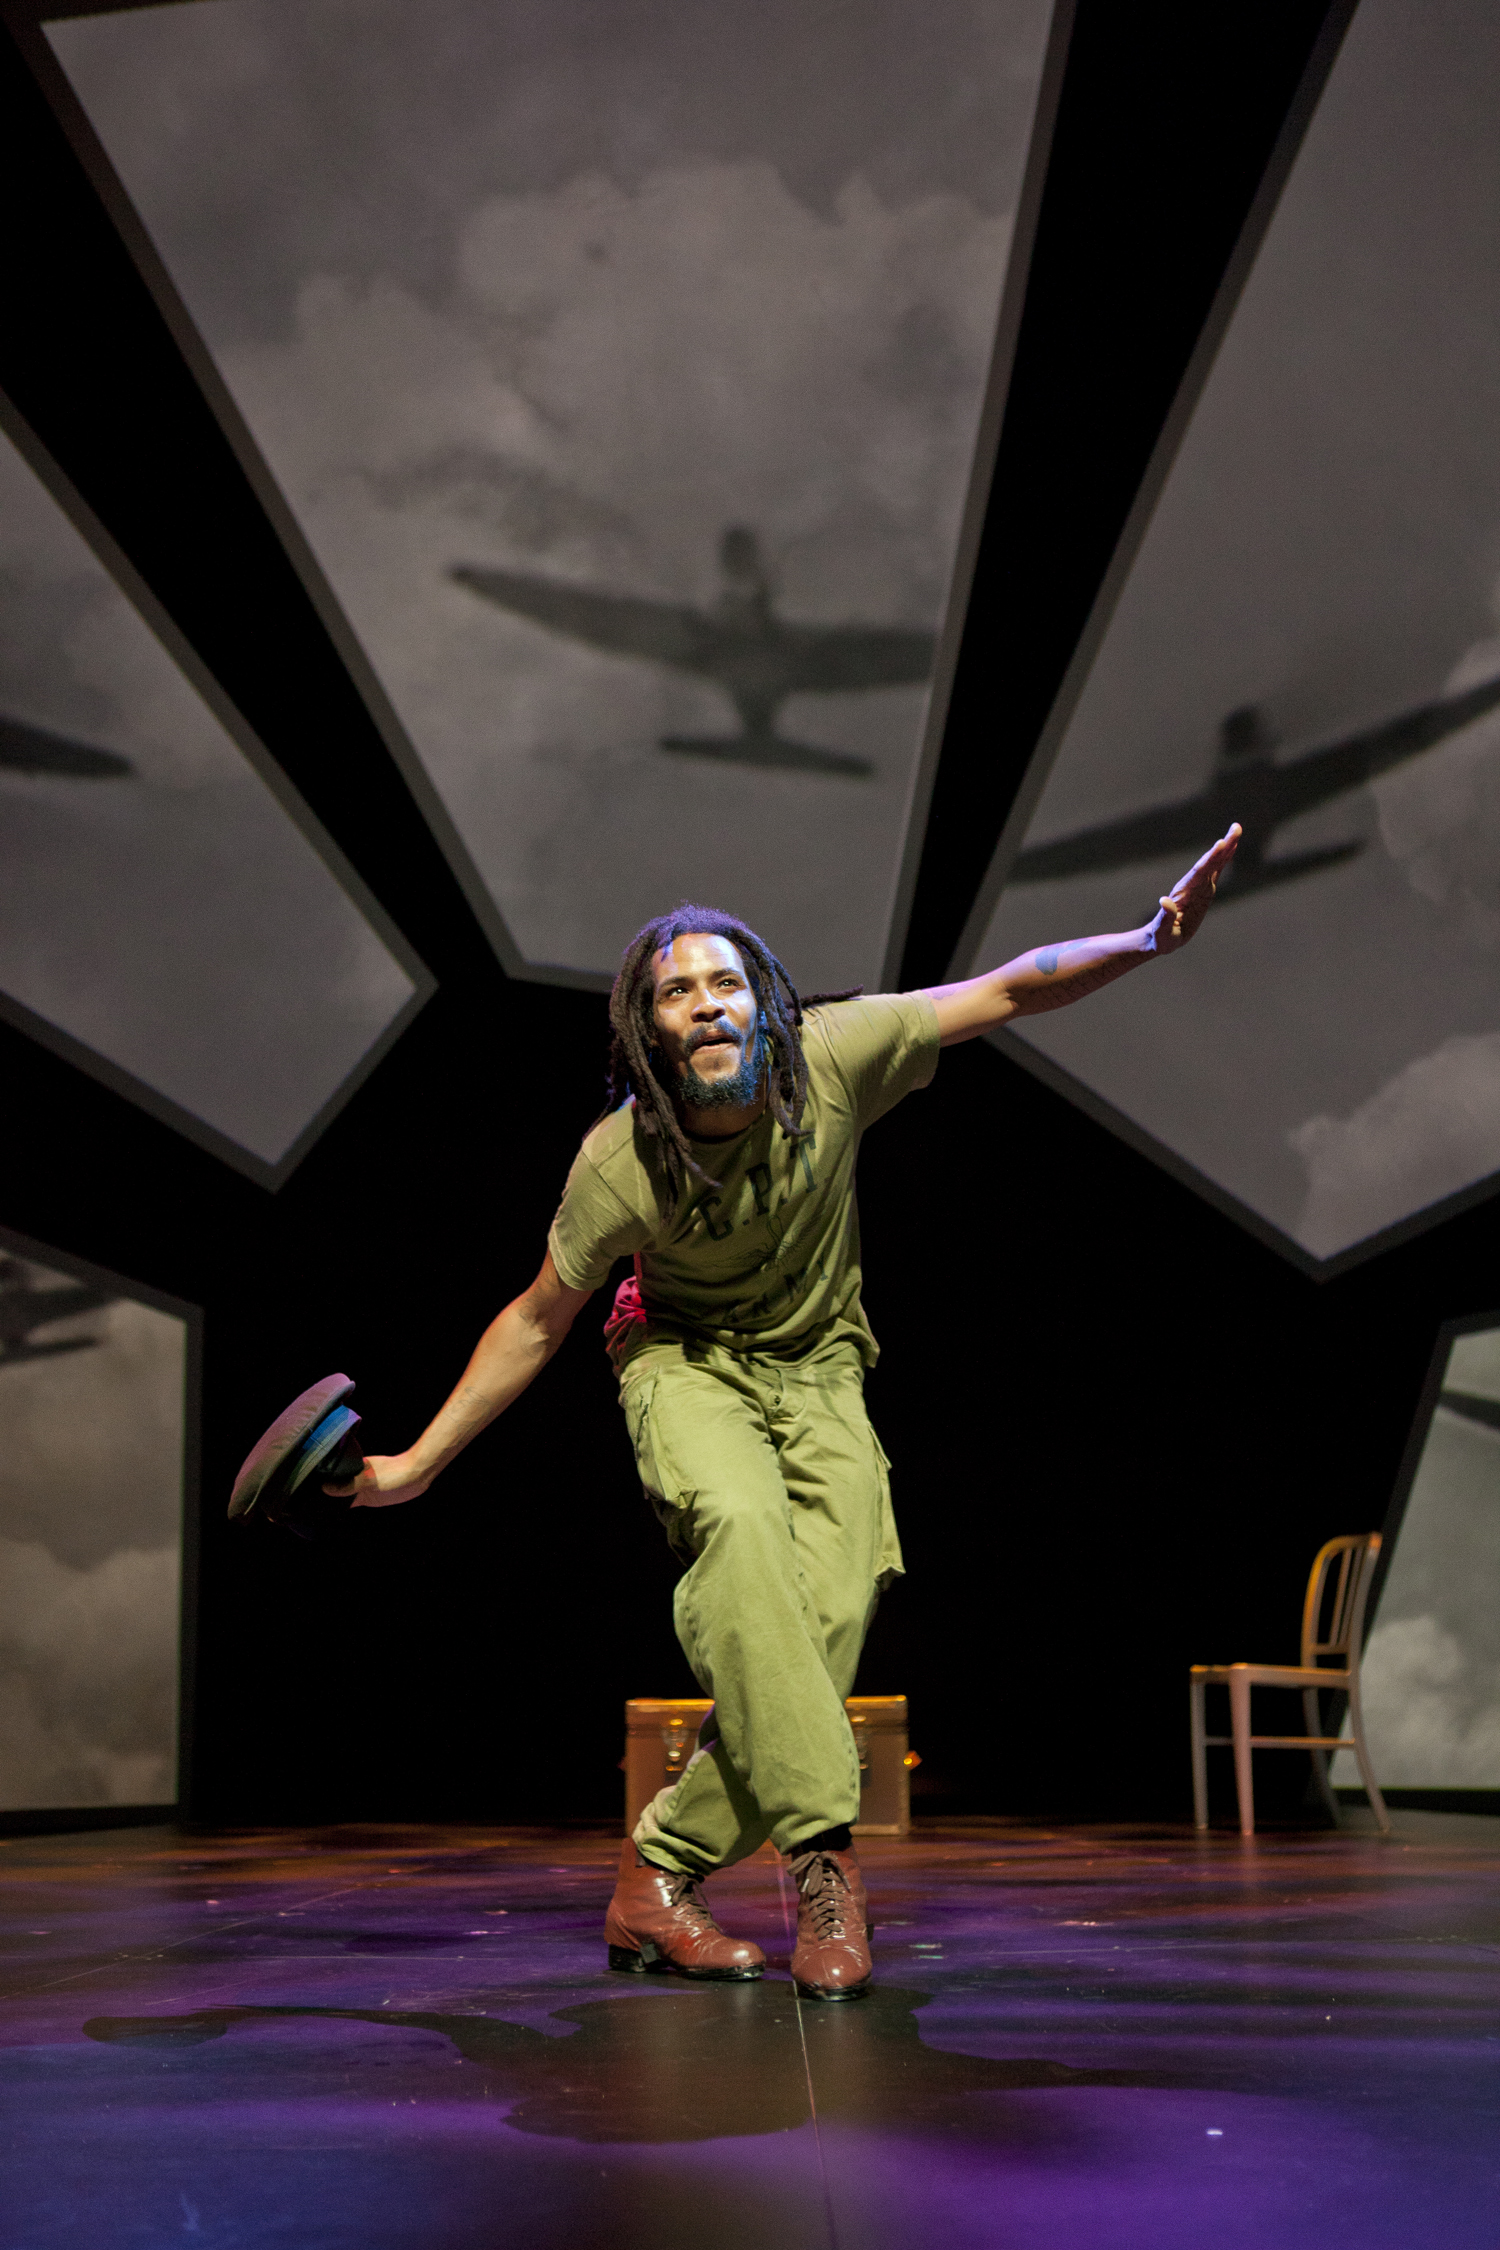 A man stands center stage with arms spread as if he is an airplane. He is tap dancing in the play title Fly at Ford's Theatre